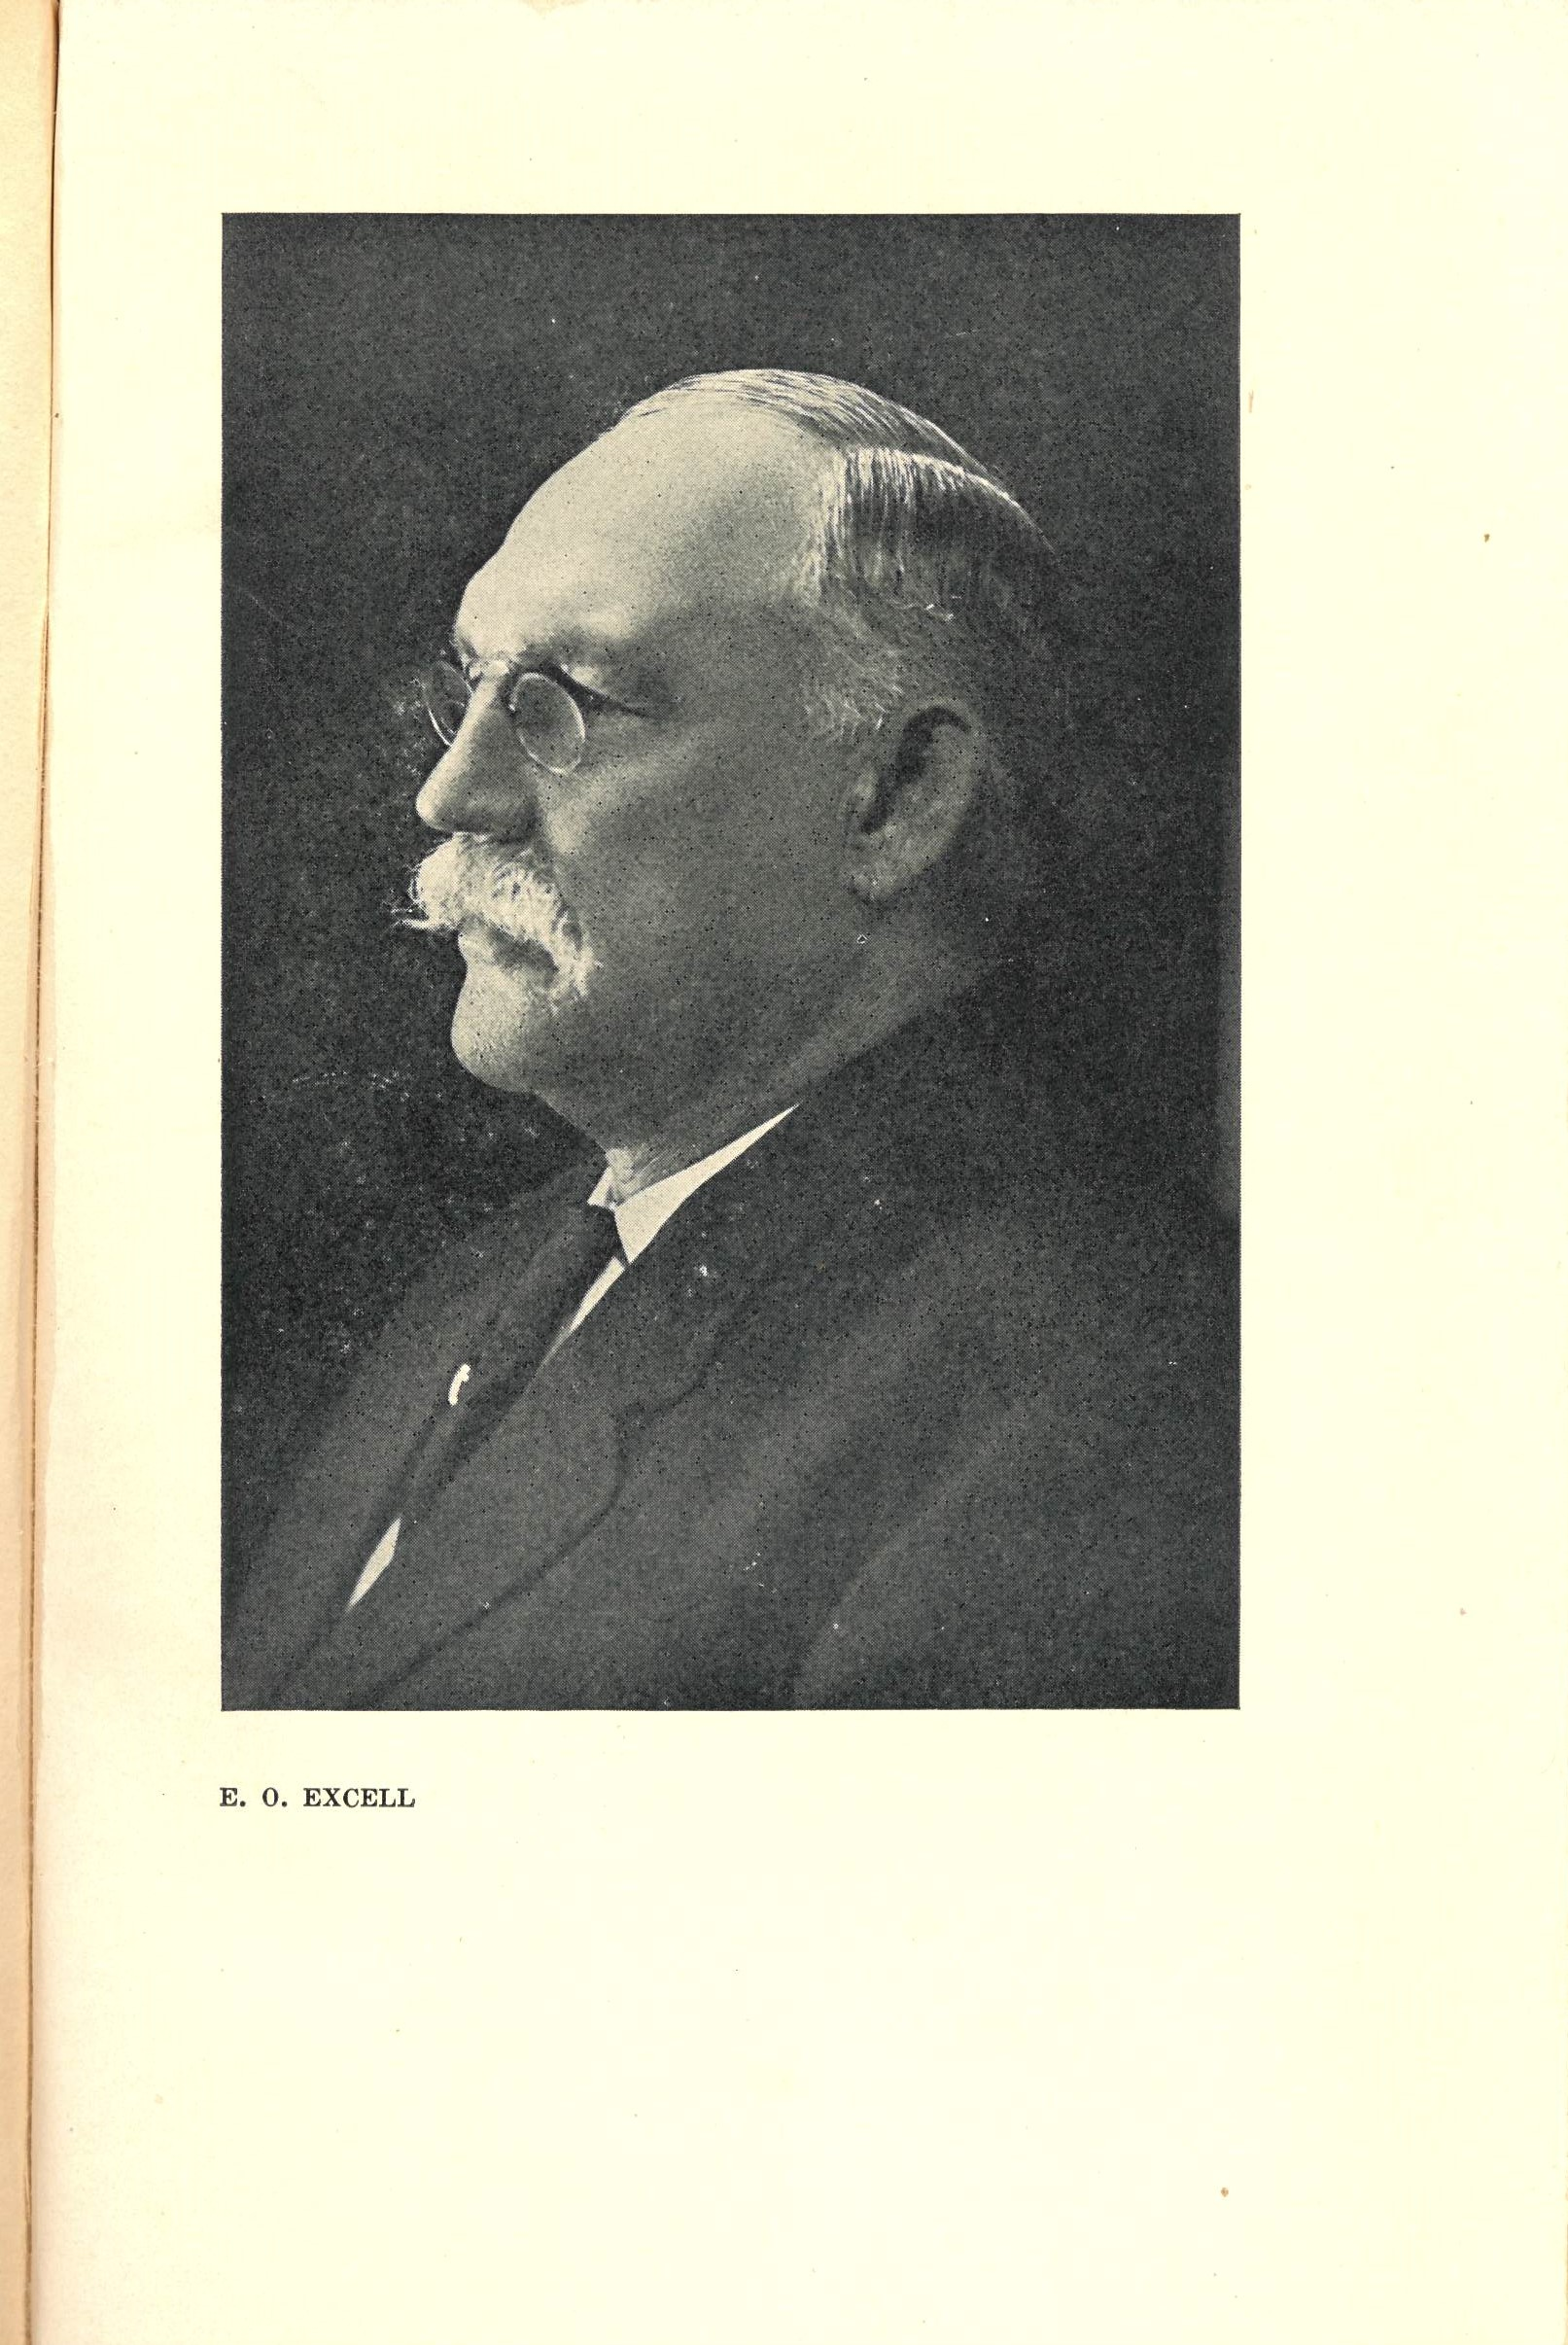 Photograph. E. O. Excell, from George C. Stebbins: Reminiscences and Gospel Hymn Stories. George H. Doran Company: New York, 1924.